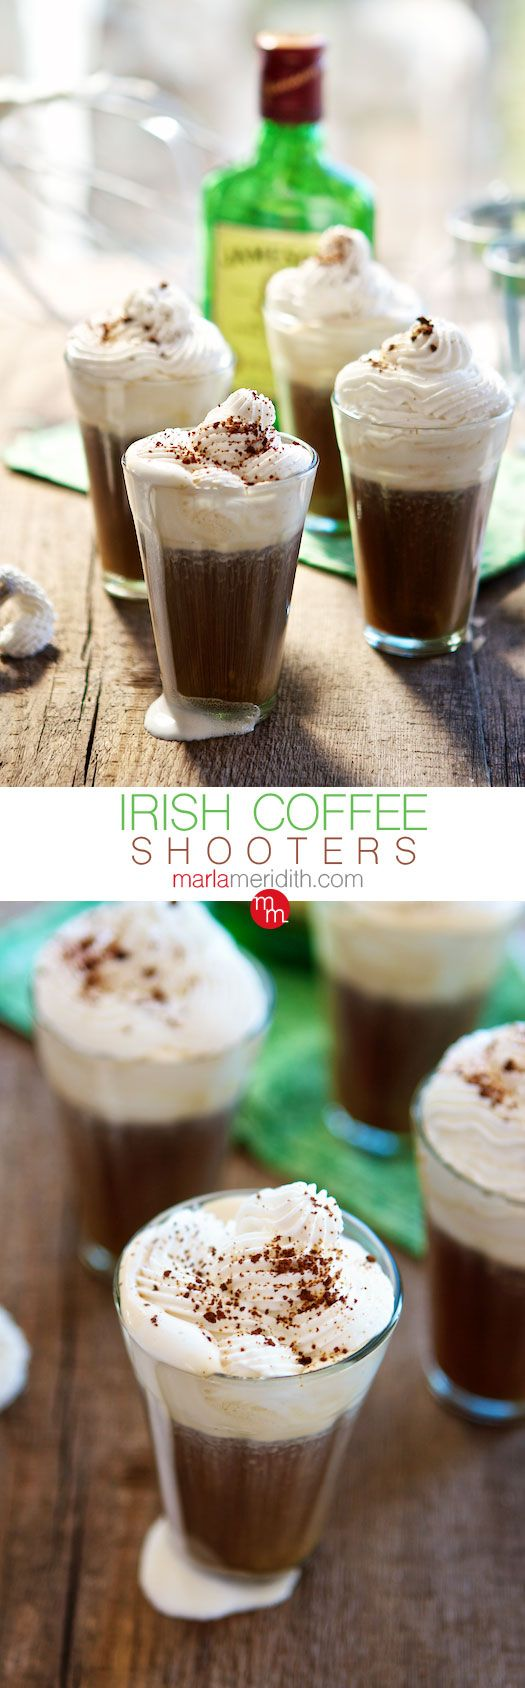 Irish Coffee Shooters (Hot or Iced) | Cocktail Recipe on MarlaMeridith.com